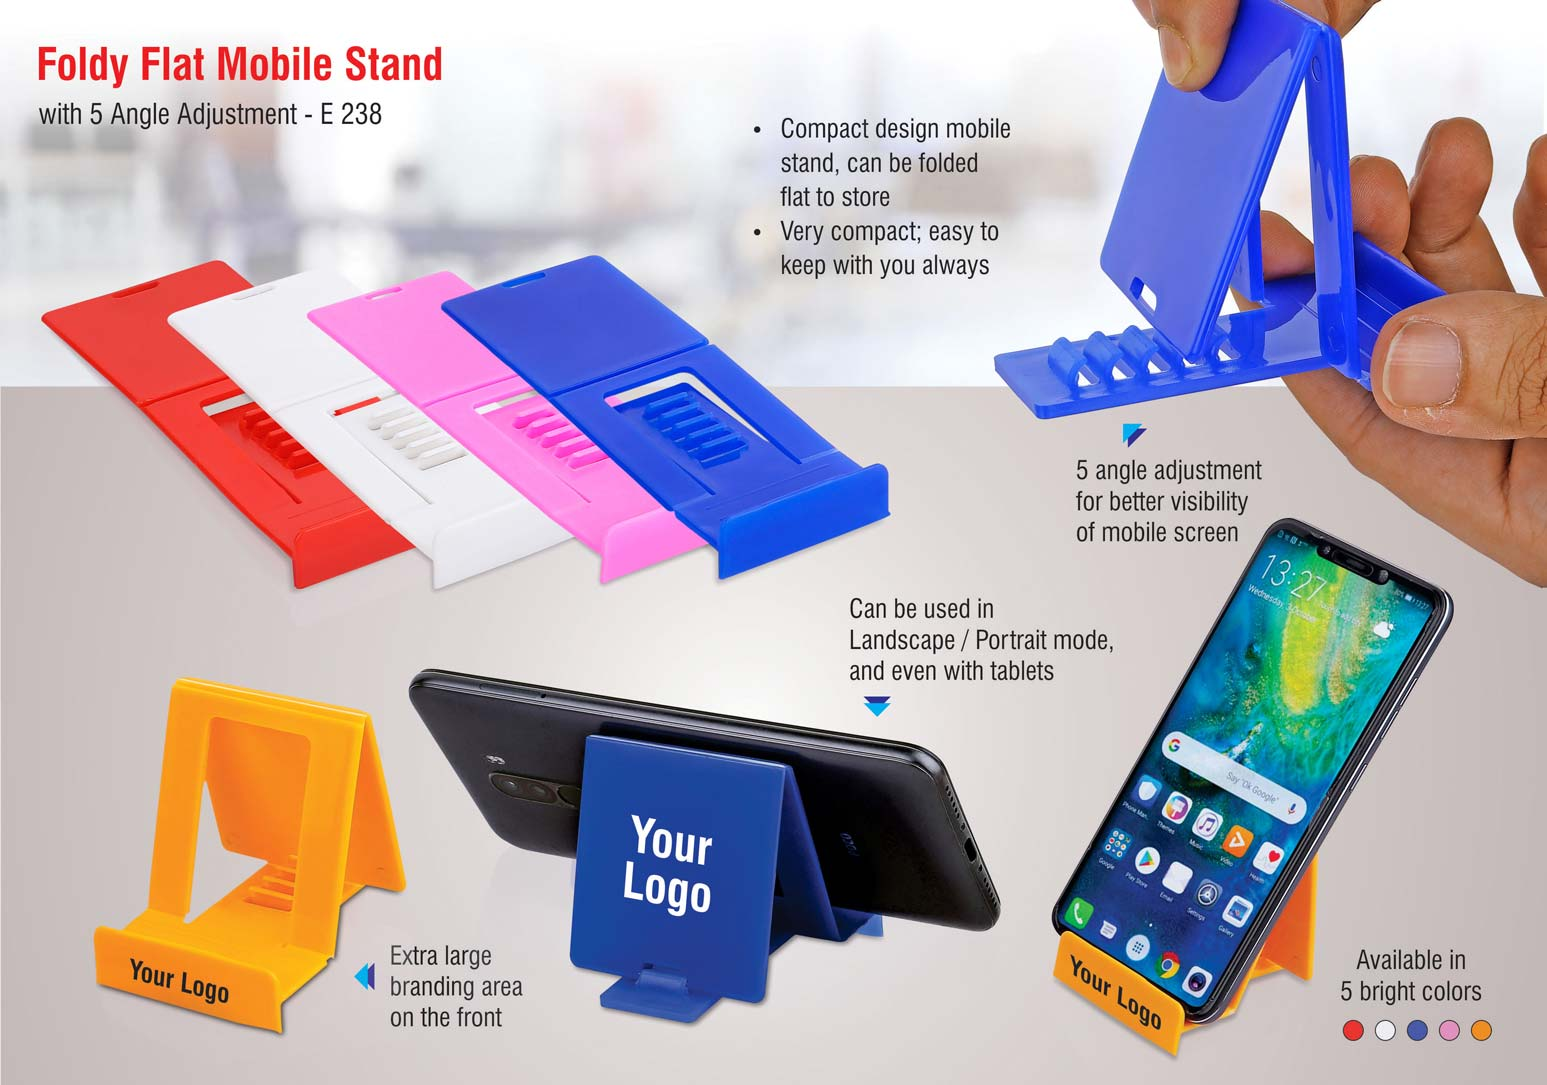 E238 - FoldyFlat mobile stand with 5 angle adjustment